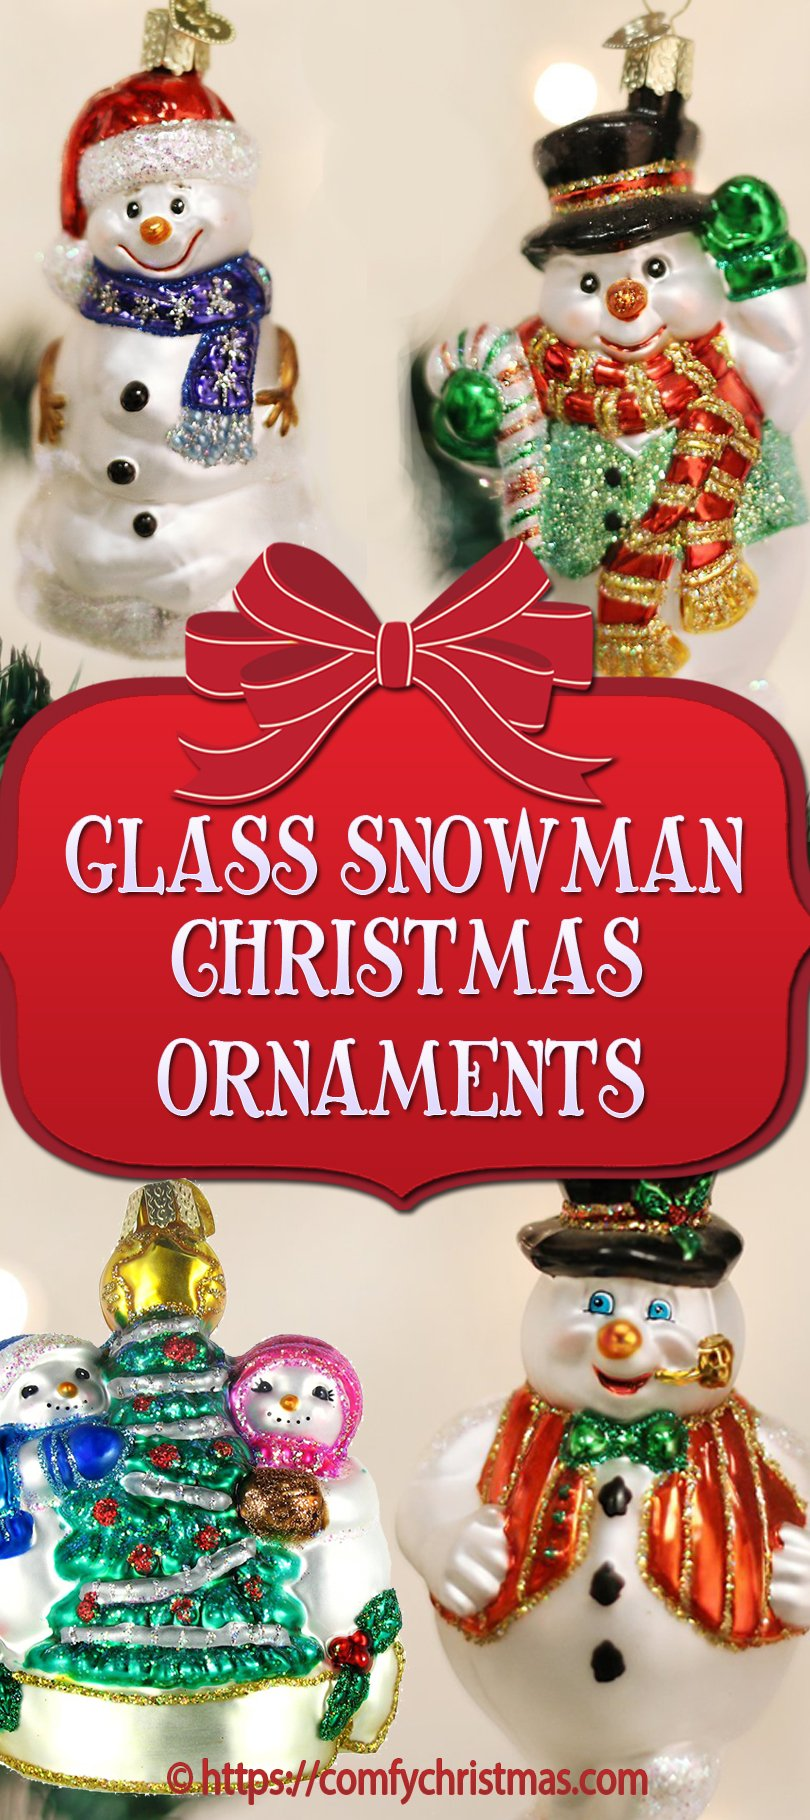 Glass Snowman Christmas Ornaments